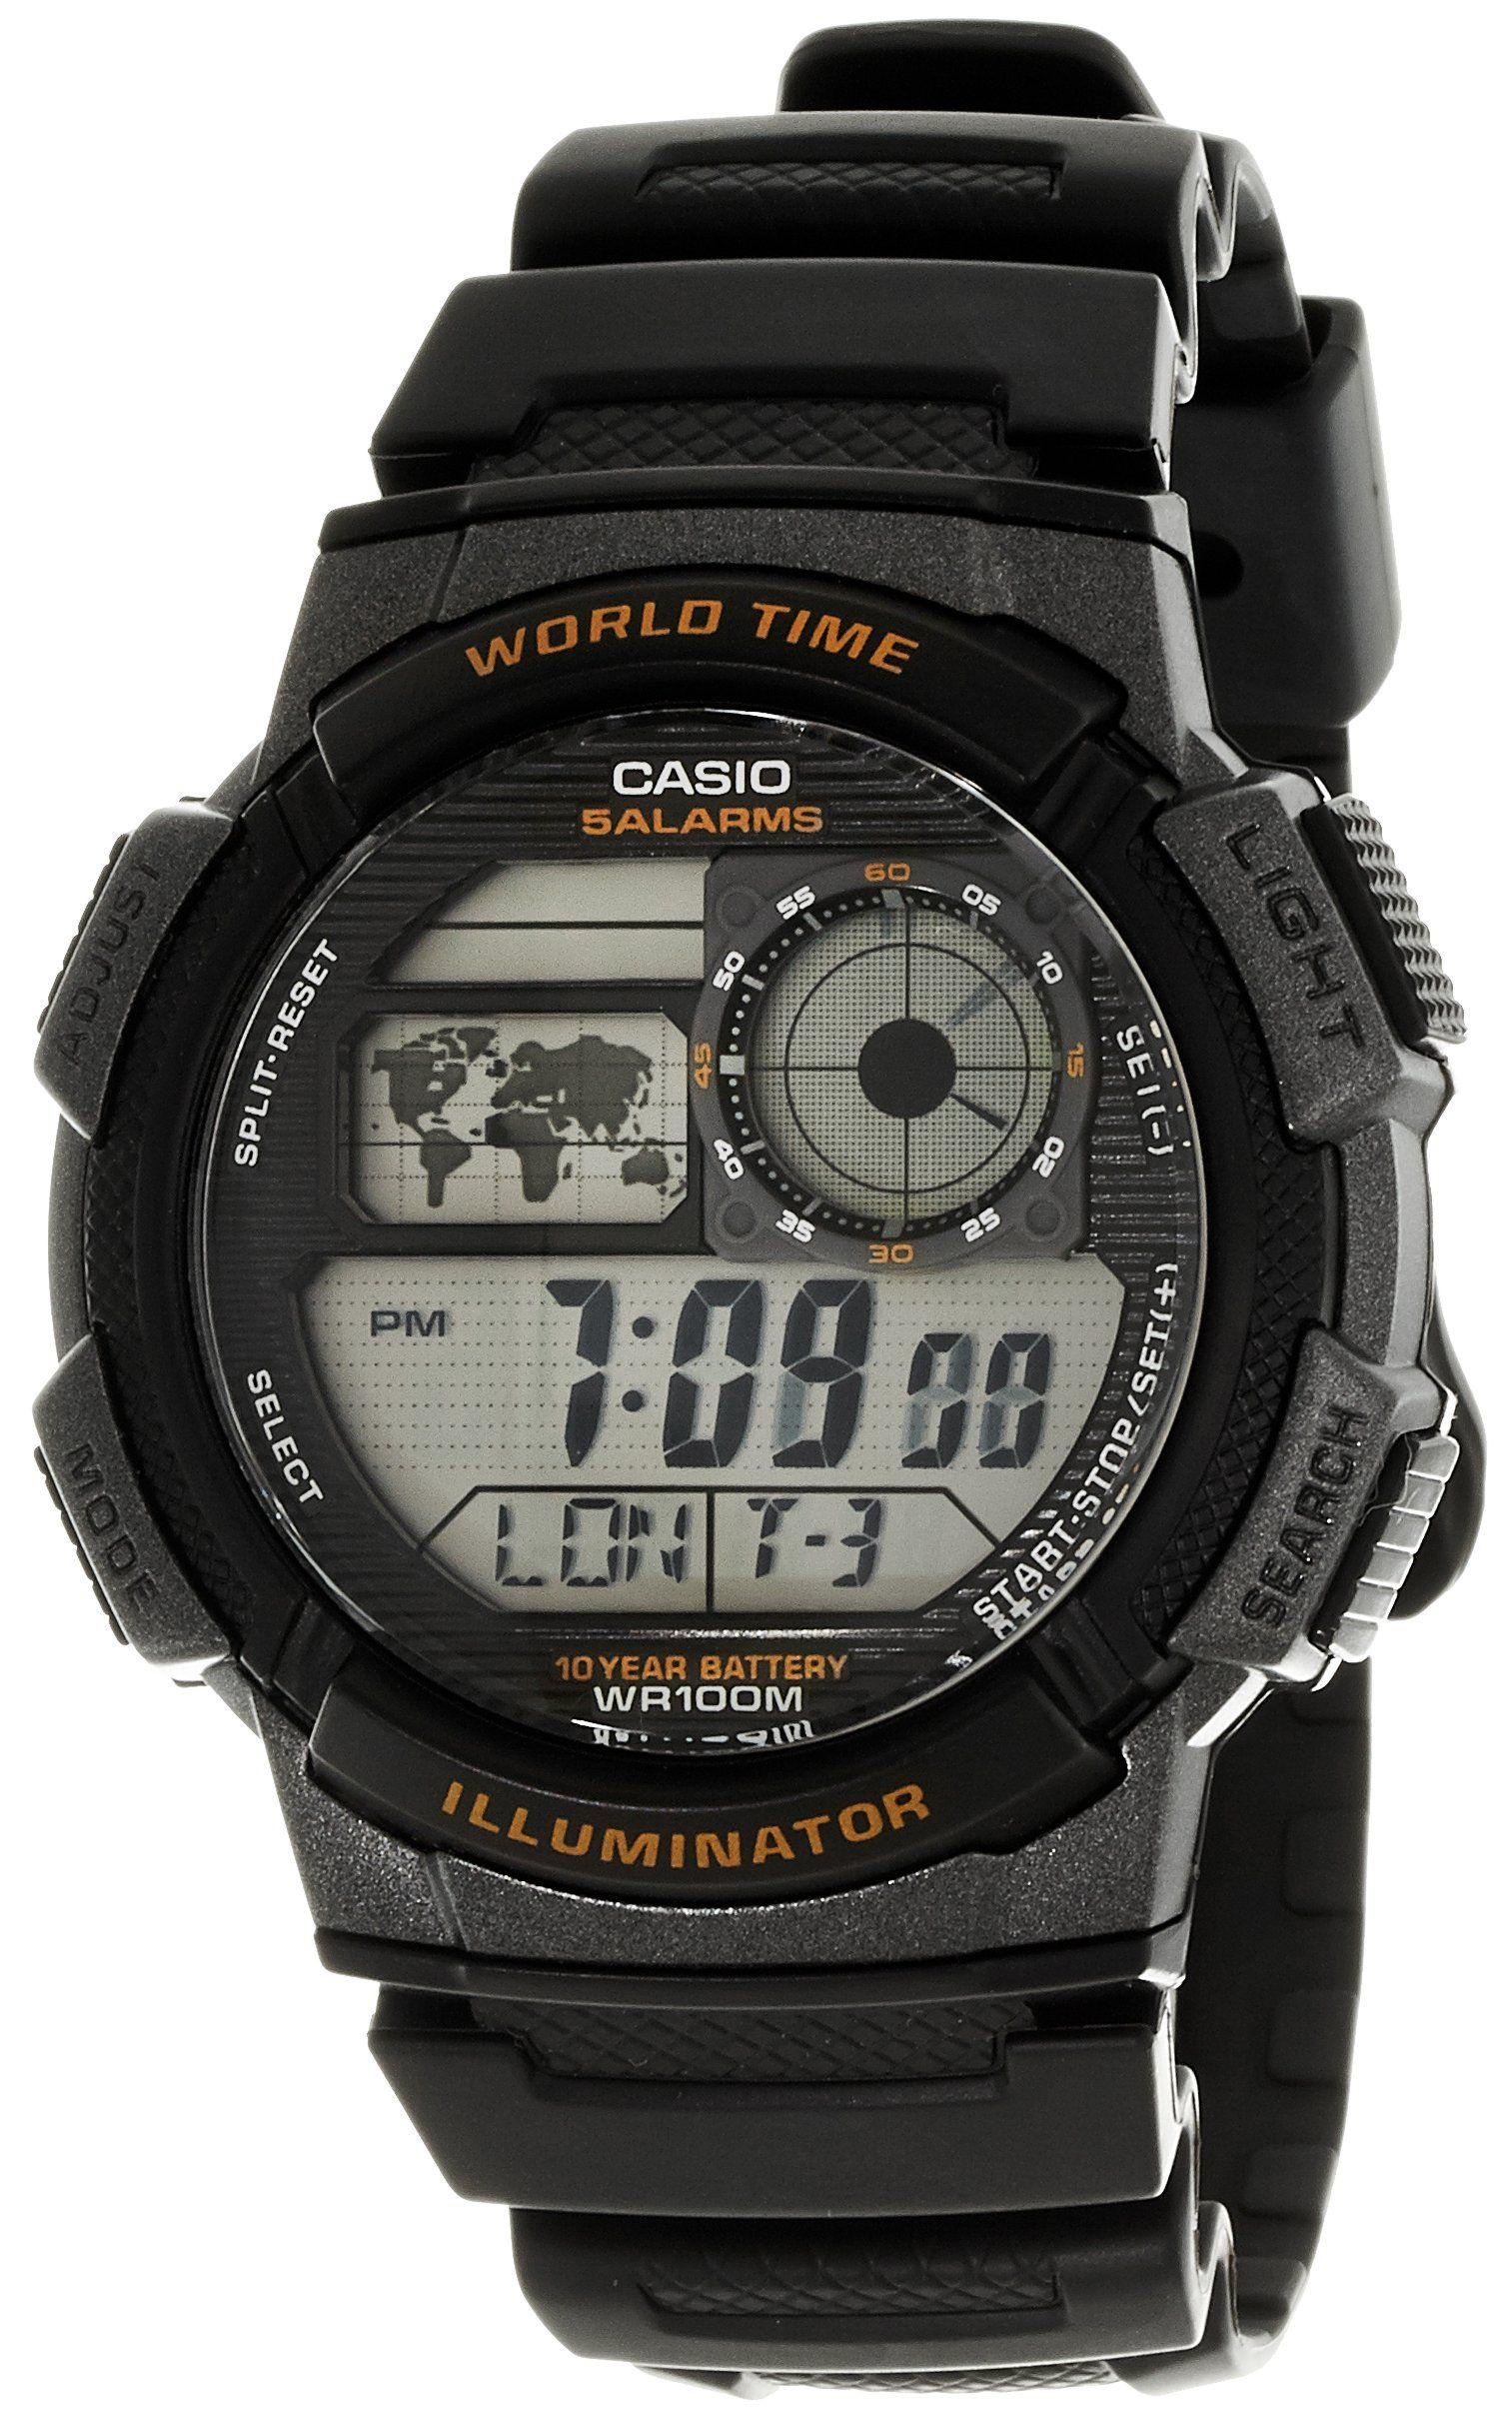 7f92502c1c91 CASIO Collection AE-1000W-1AVEF - Reloj de caballero de cuarzo ...